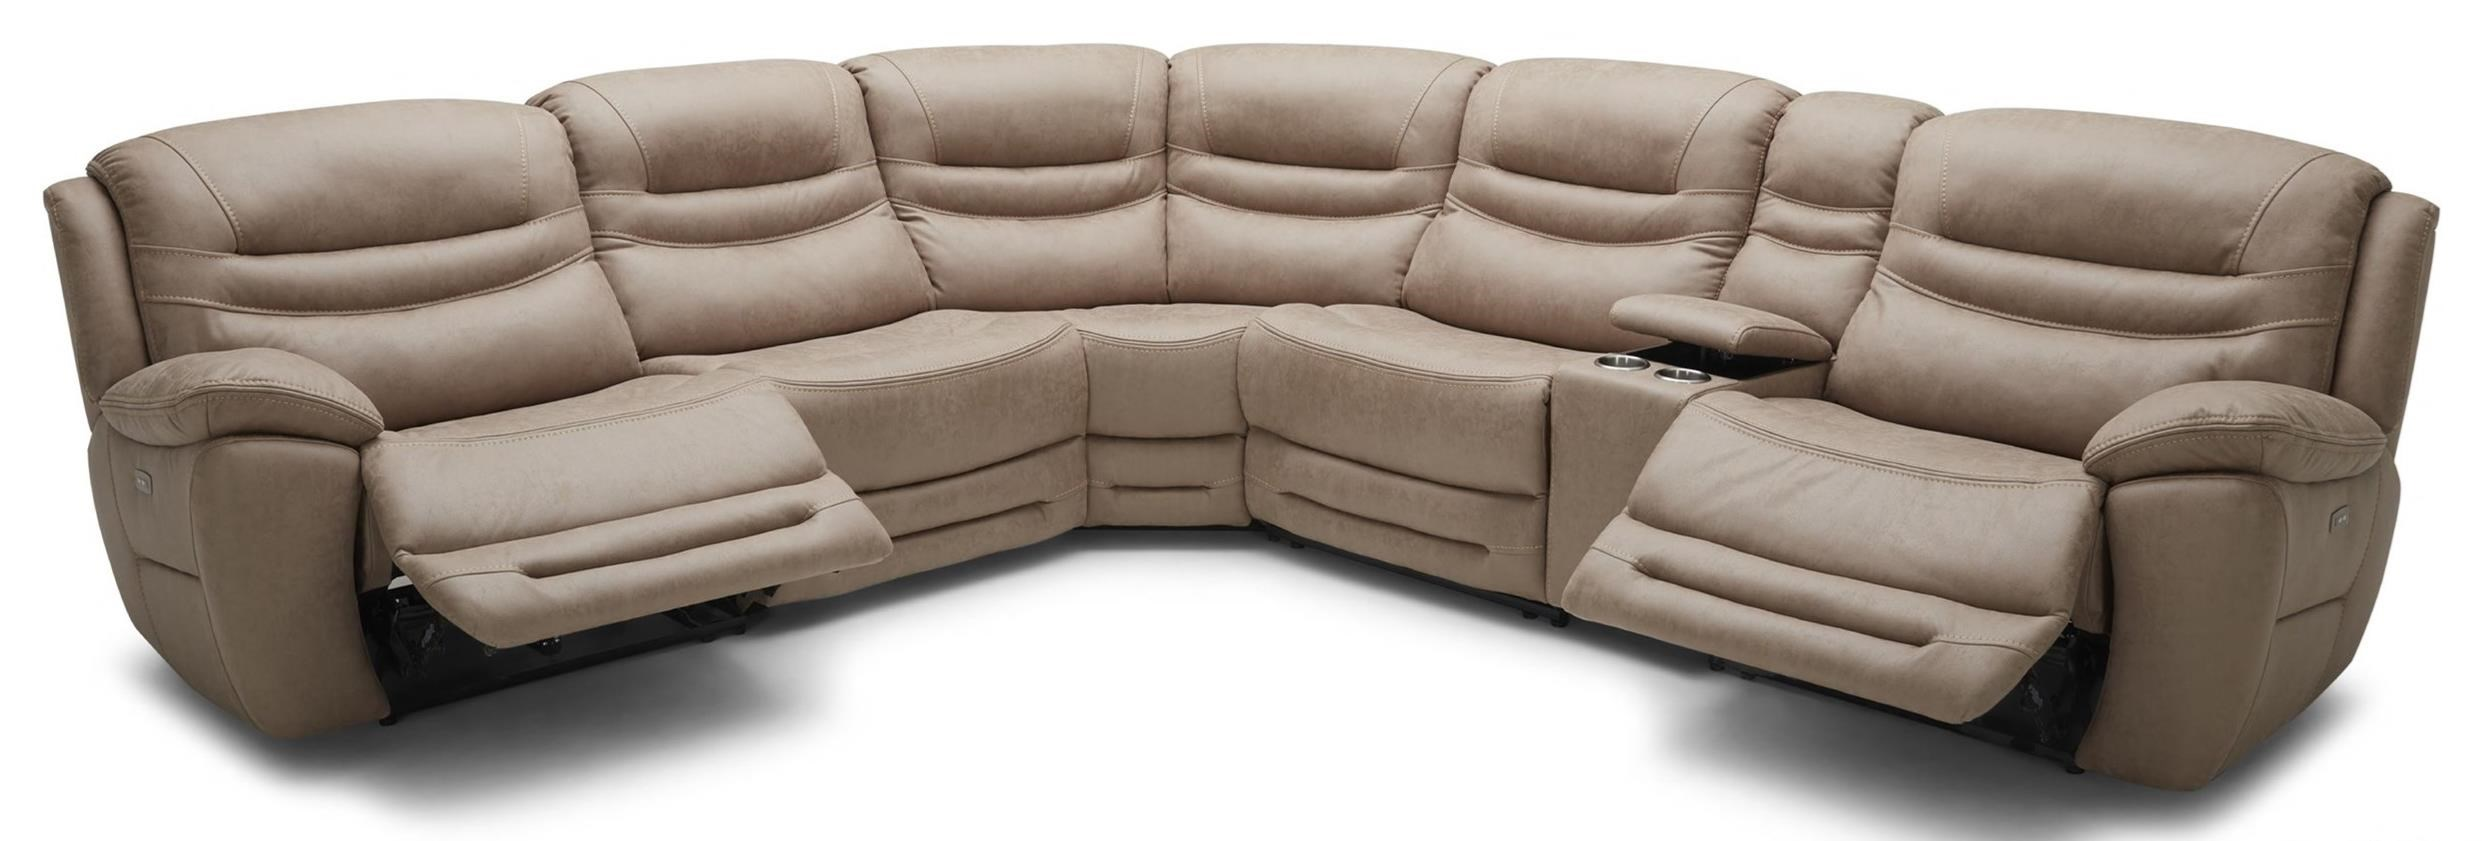 km083 6 pc reclining sectional sofa